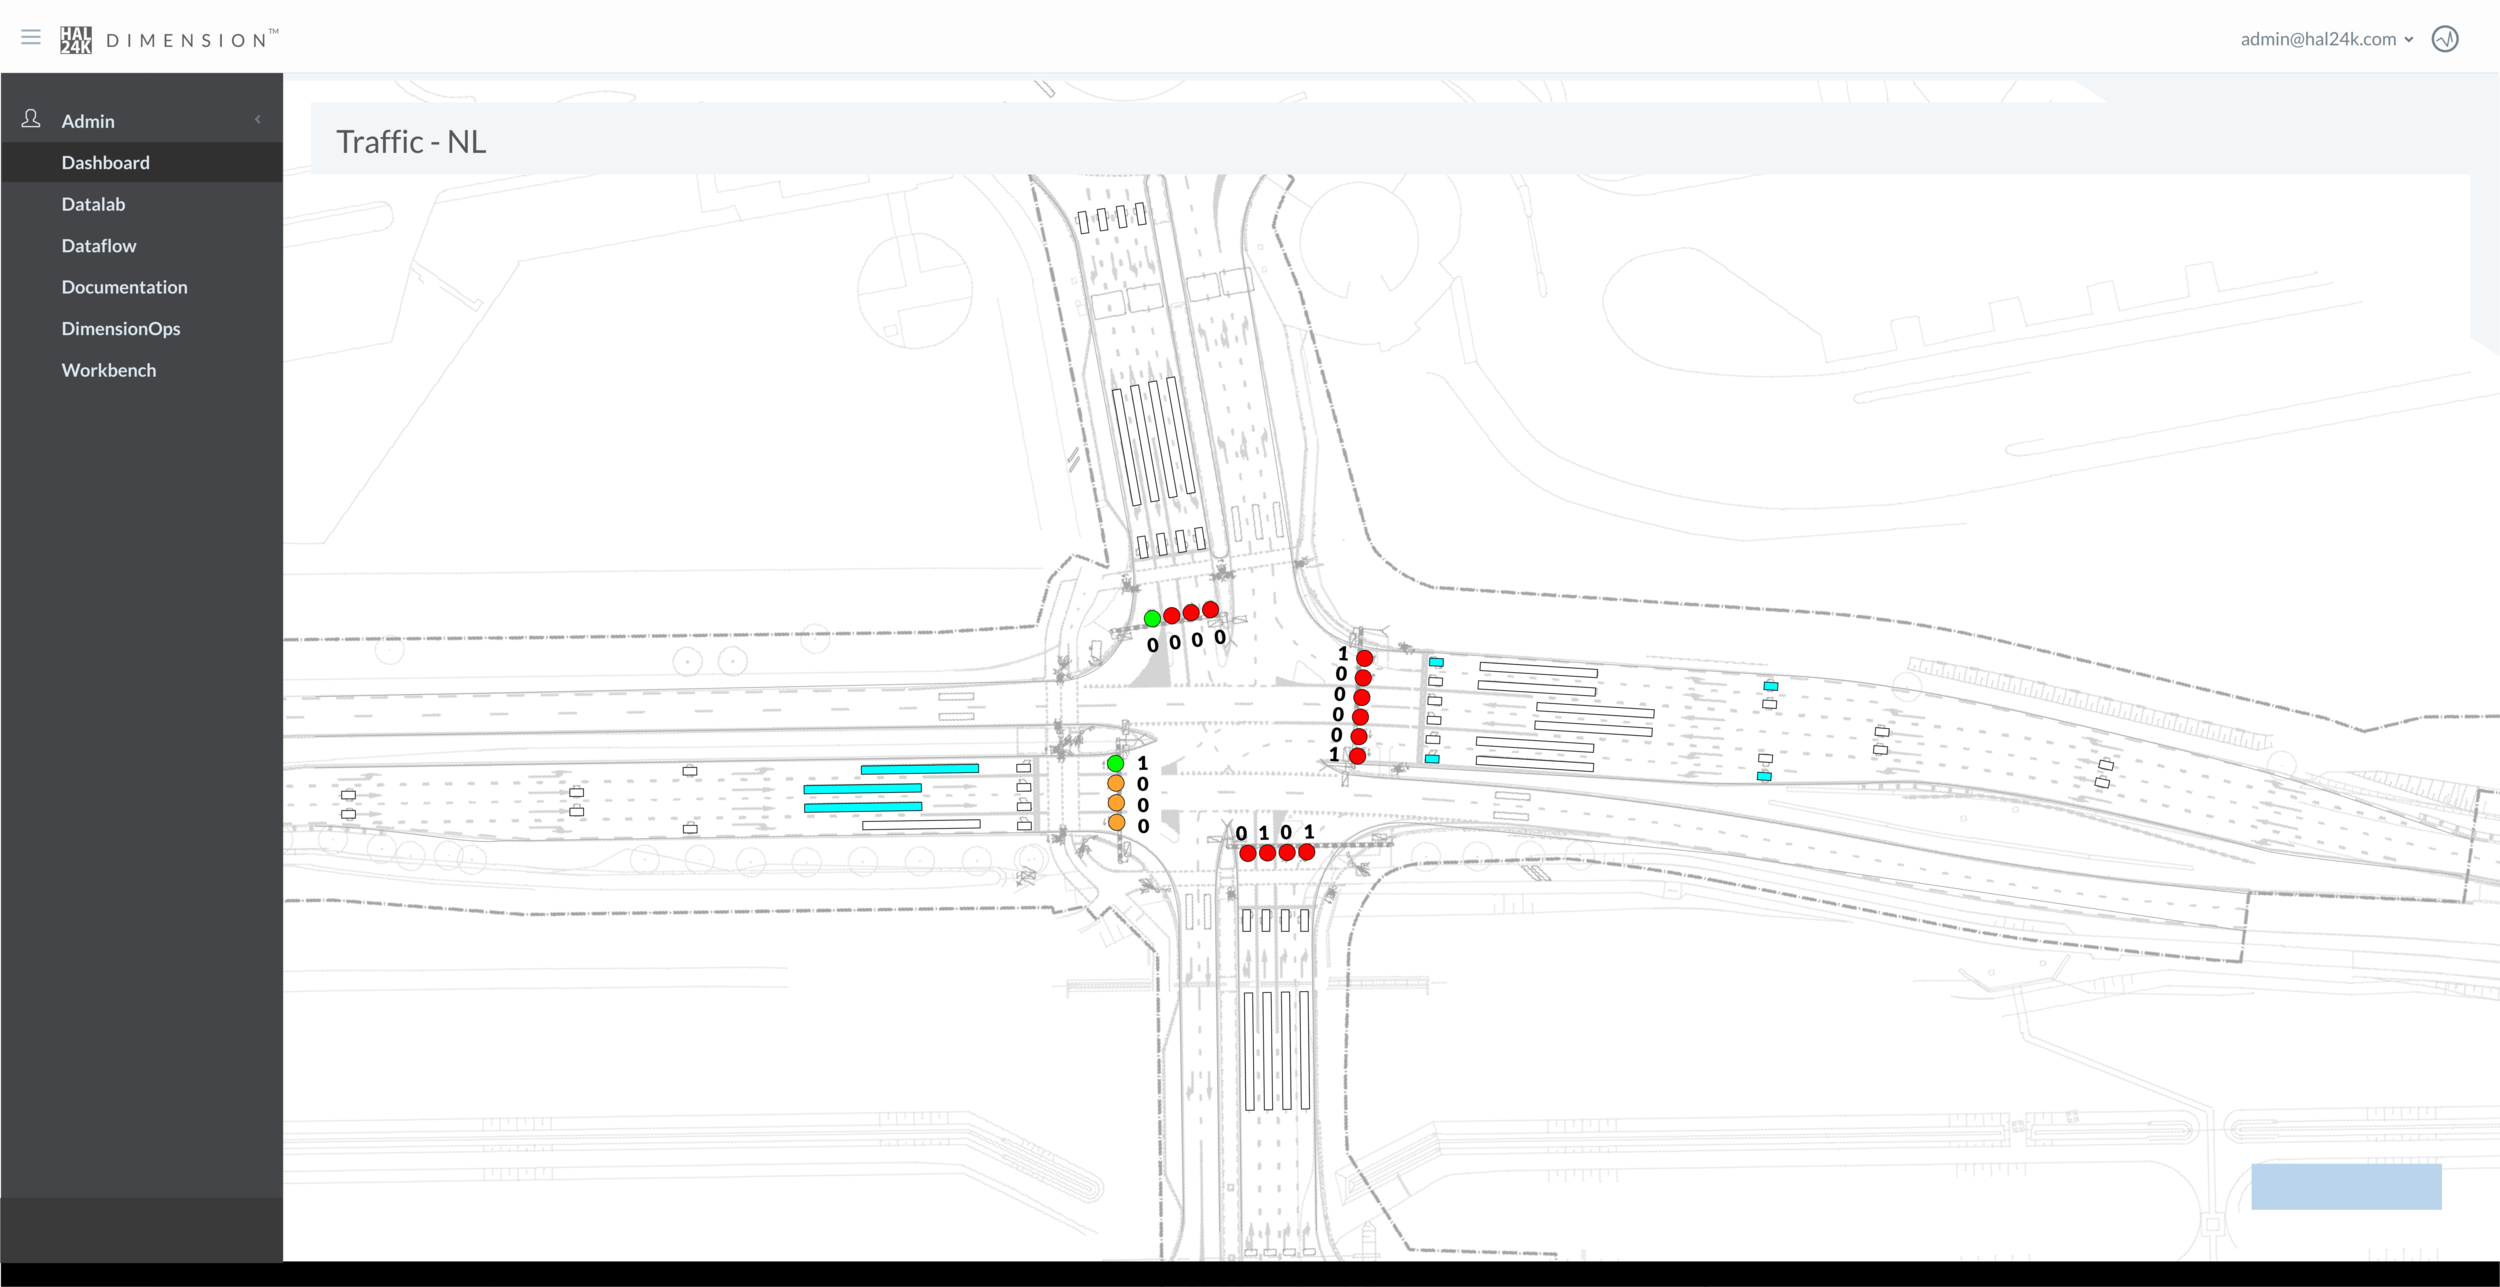 Queue Prediction - Real-time and forecasted queue length predictions, per lane, at intersections to optimize flowHow it is usedOperational and dynamic controlPlanning, e.g. construction, maintenance, staffing, etc Public informationAutonomous vehicles (V2X) Infrastructure design and configurationData streamsLoop sensors, traffic light status